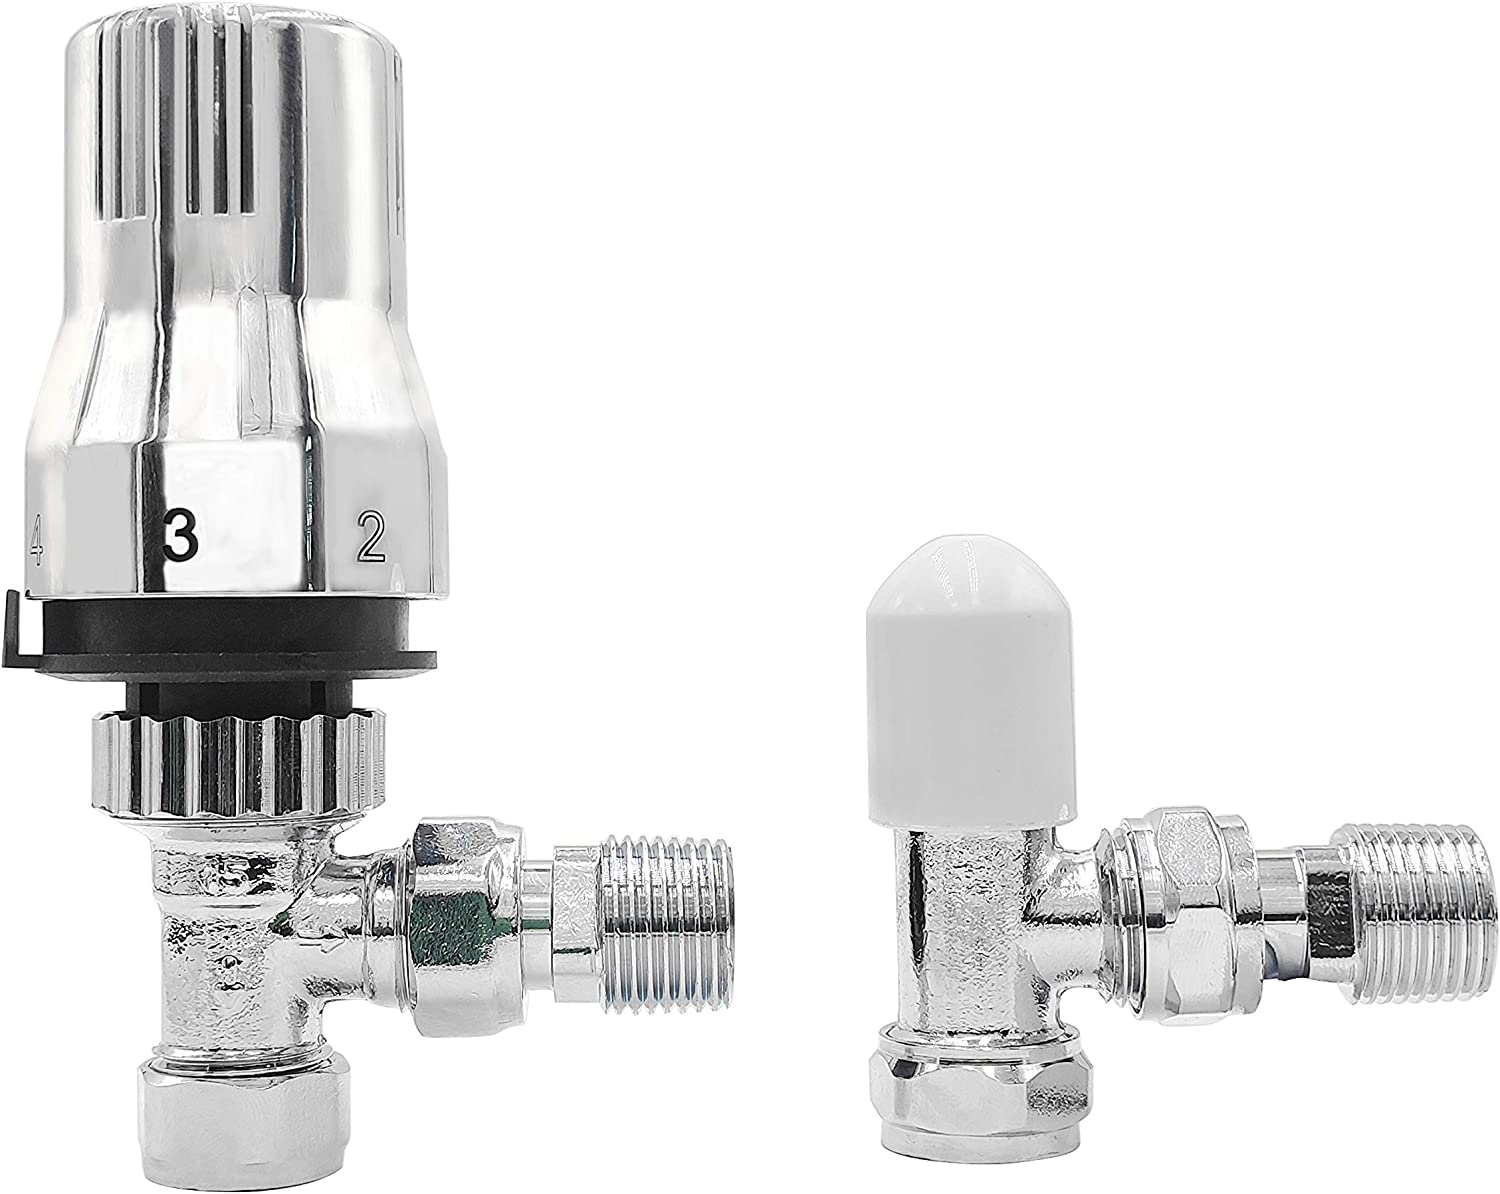 NRG 15mm Angled Thermostatic Radiator Valve and Manual Angled Valves Anthracite